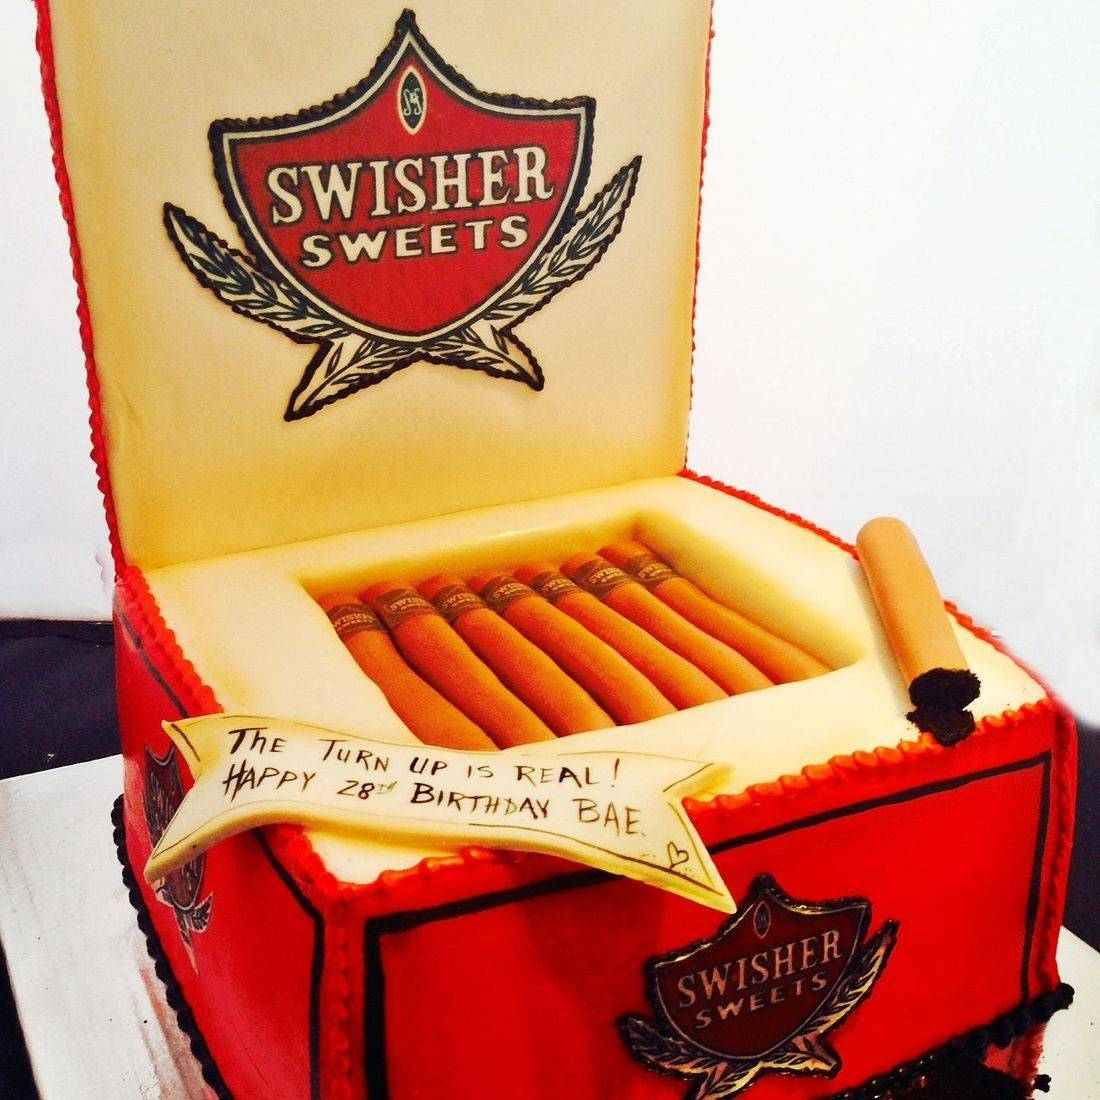 Swisher Sweets Box Cake Dimensional Cake Milwaukee